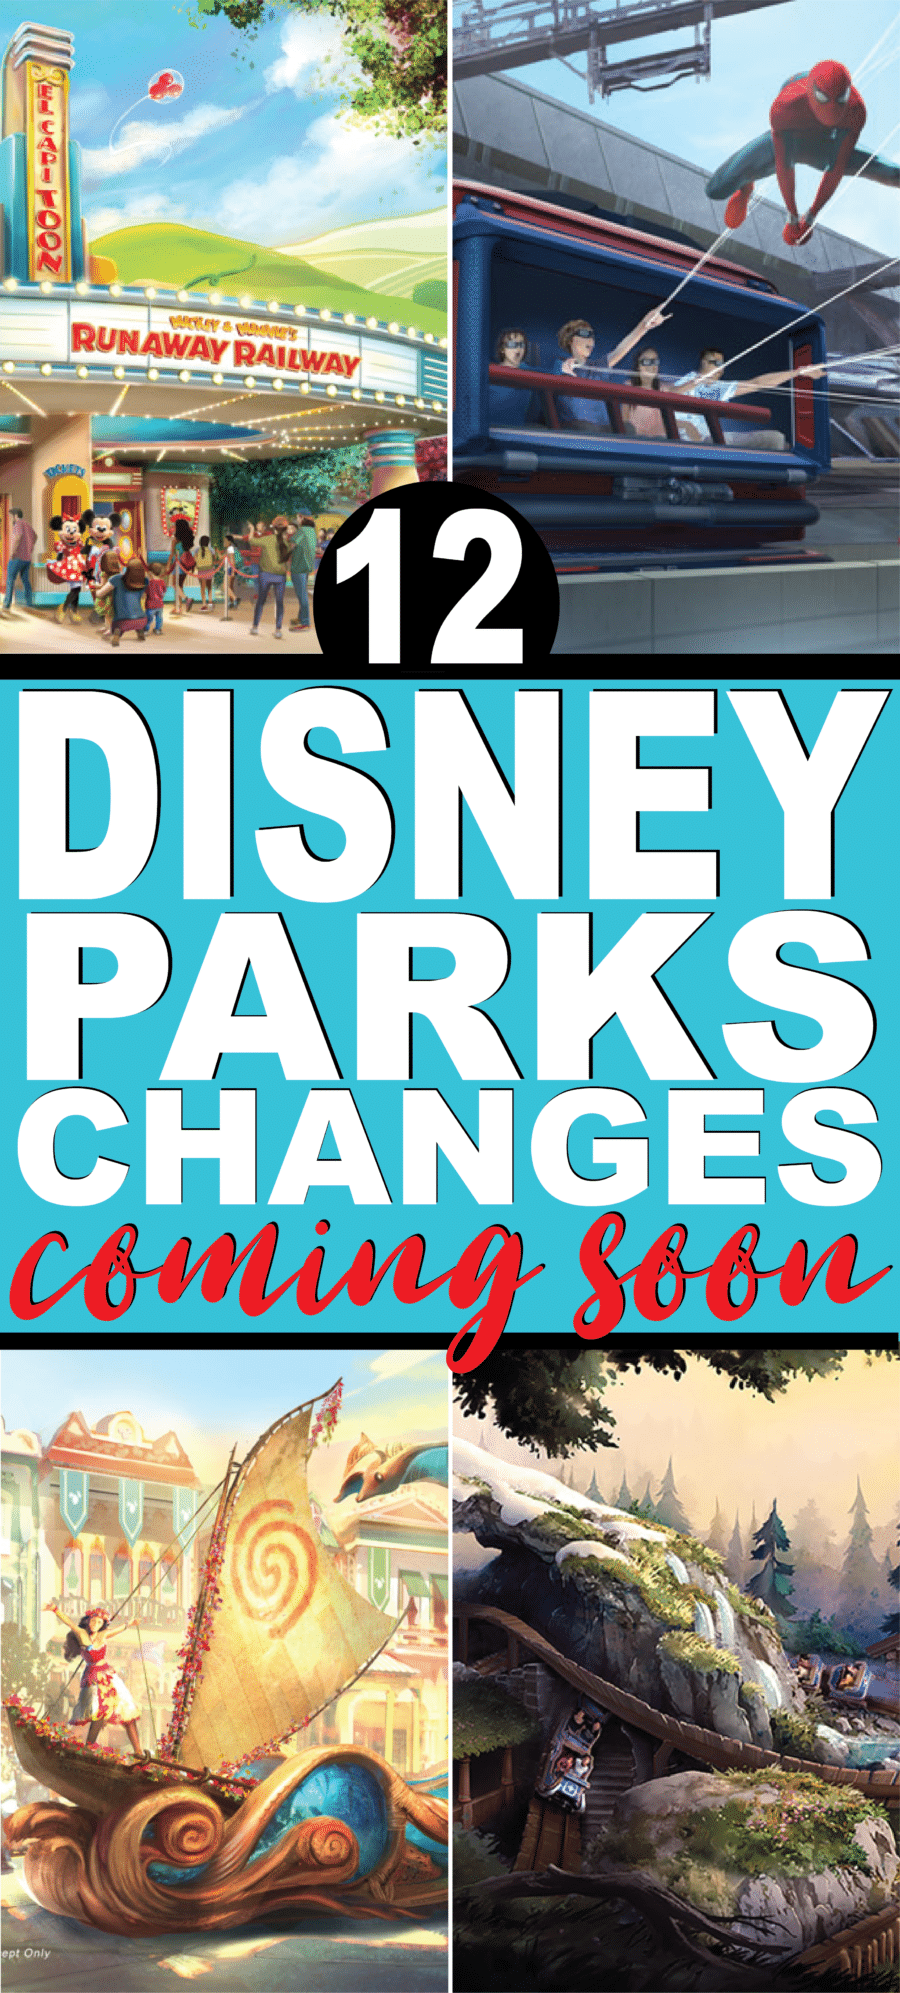 All of the changes coming to Disney parks in the next few years! Everything from Star Wars to Avengers, Mary Poppins, and more!